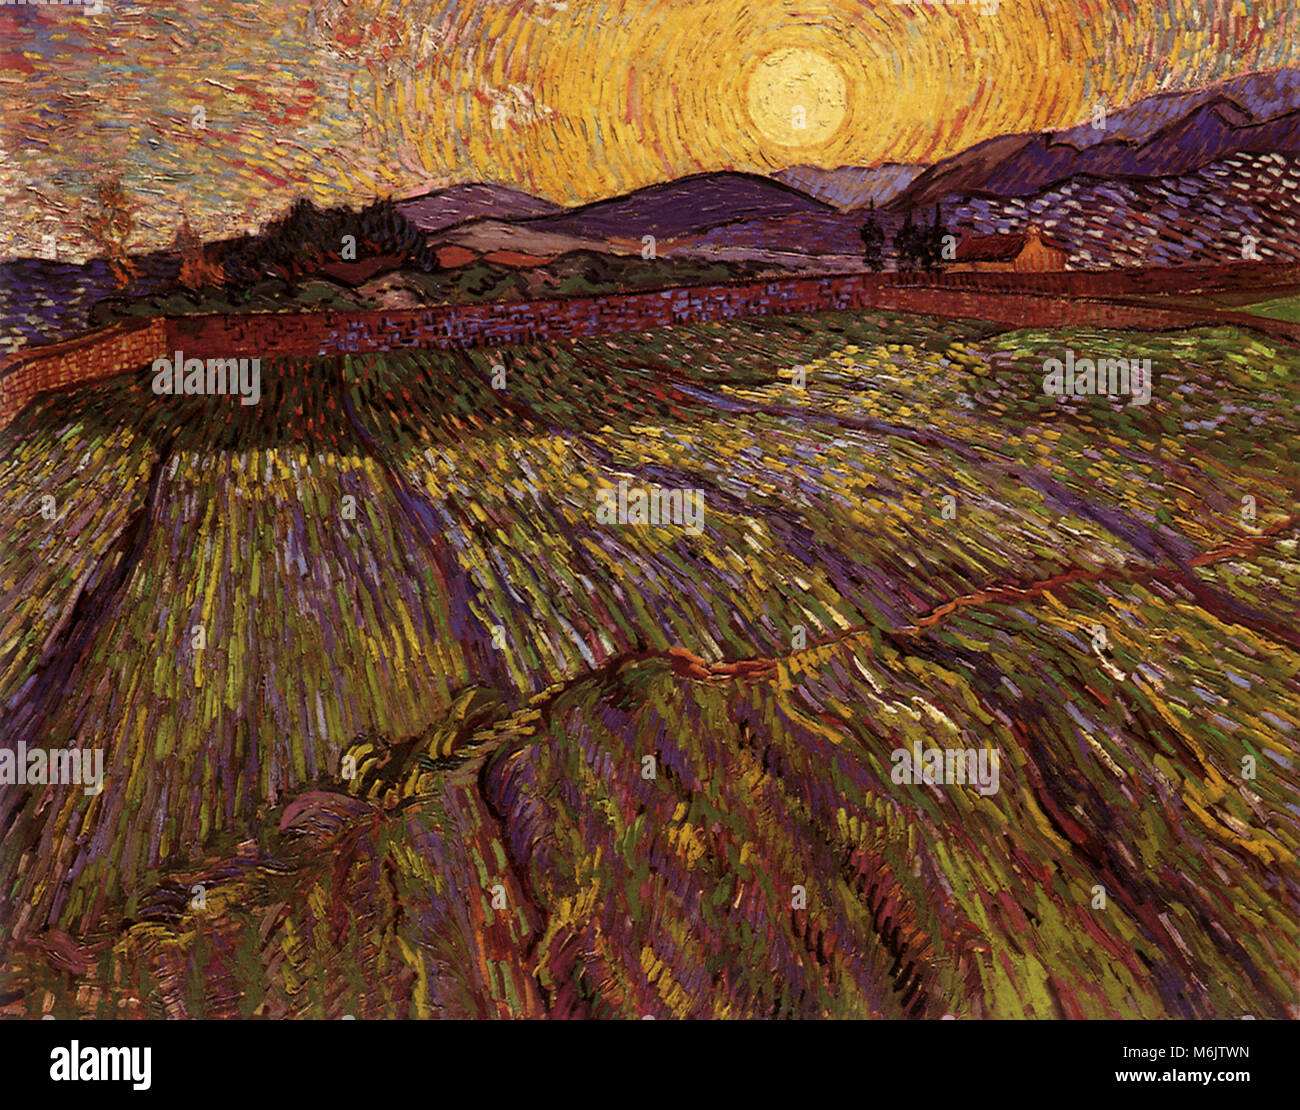 Wheat Field with Rising Sun, Van Gogh, Vincent Willem, 1889. - Stock Image